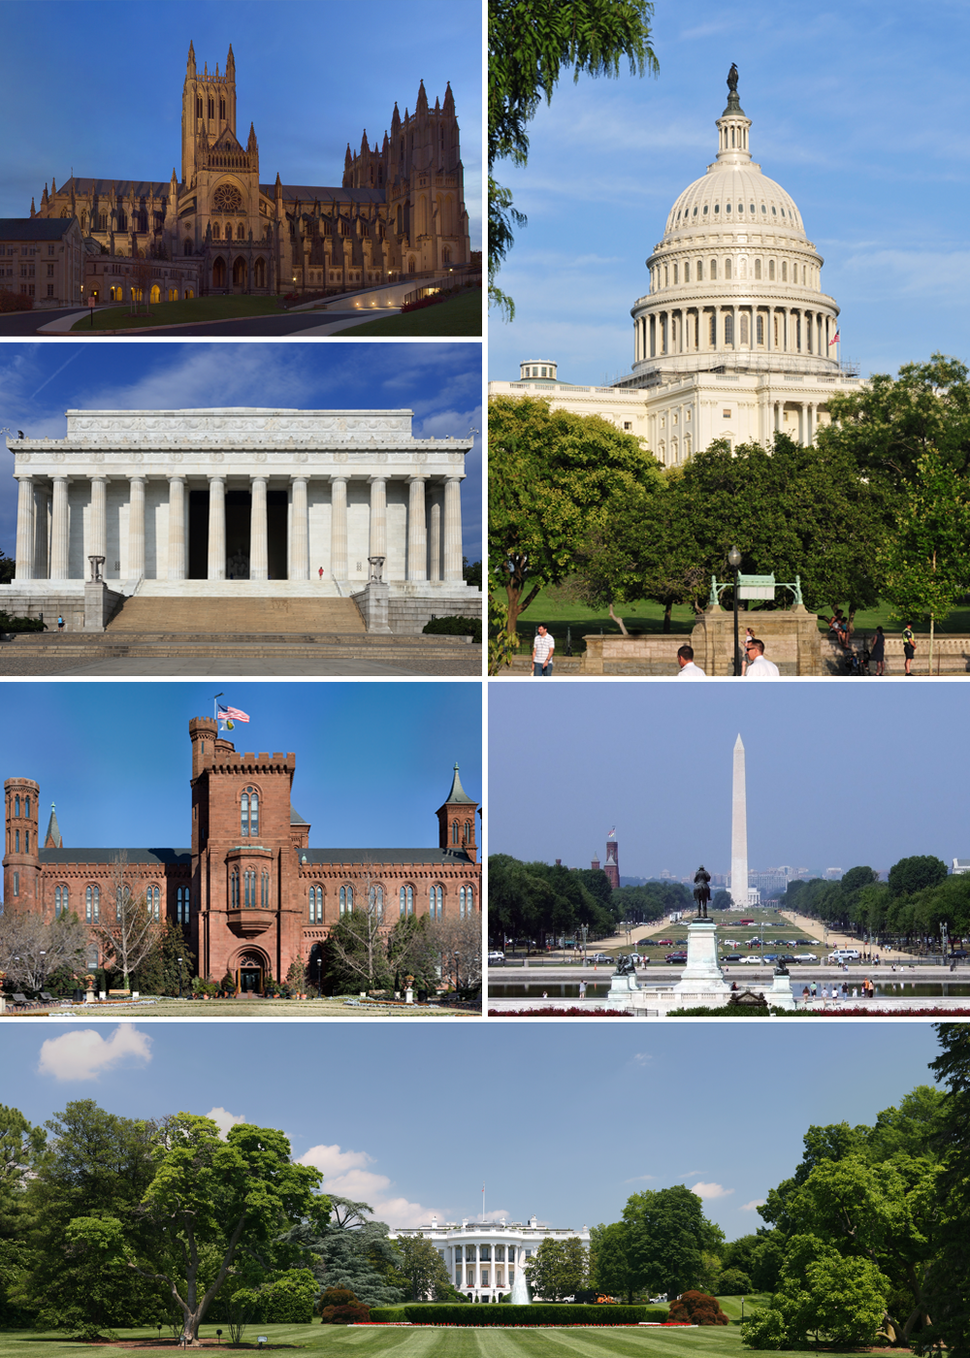 Clockwise from top right: United States Capitol, Washington Monument,  the White House, Smithsonian Institution Building, Lincoln Memorial and Washington National Cathedral